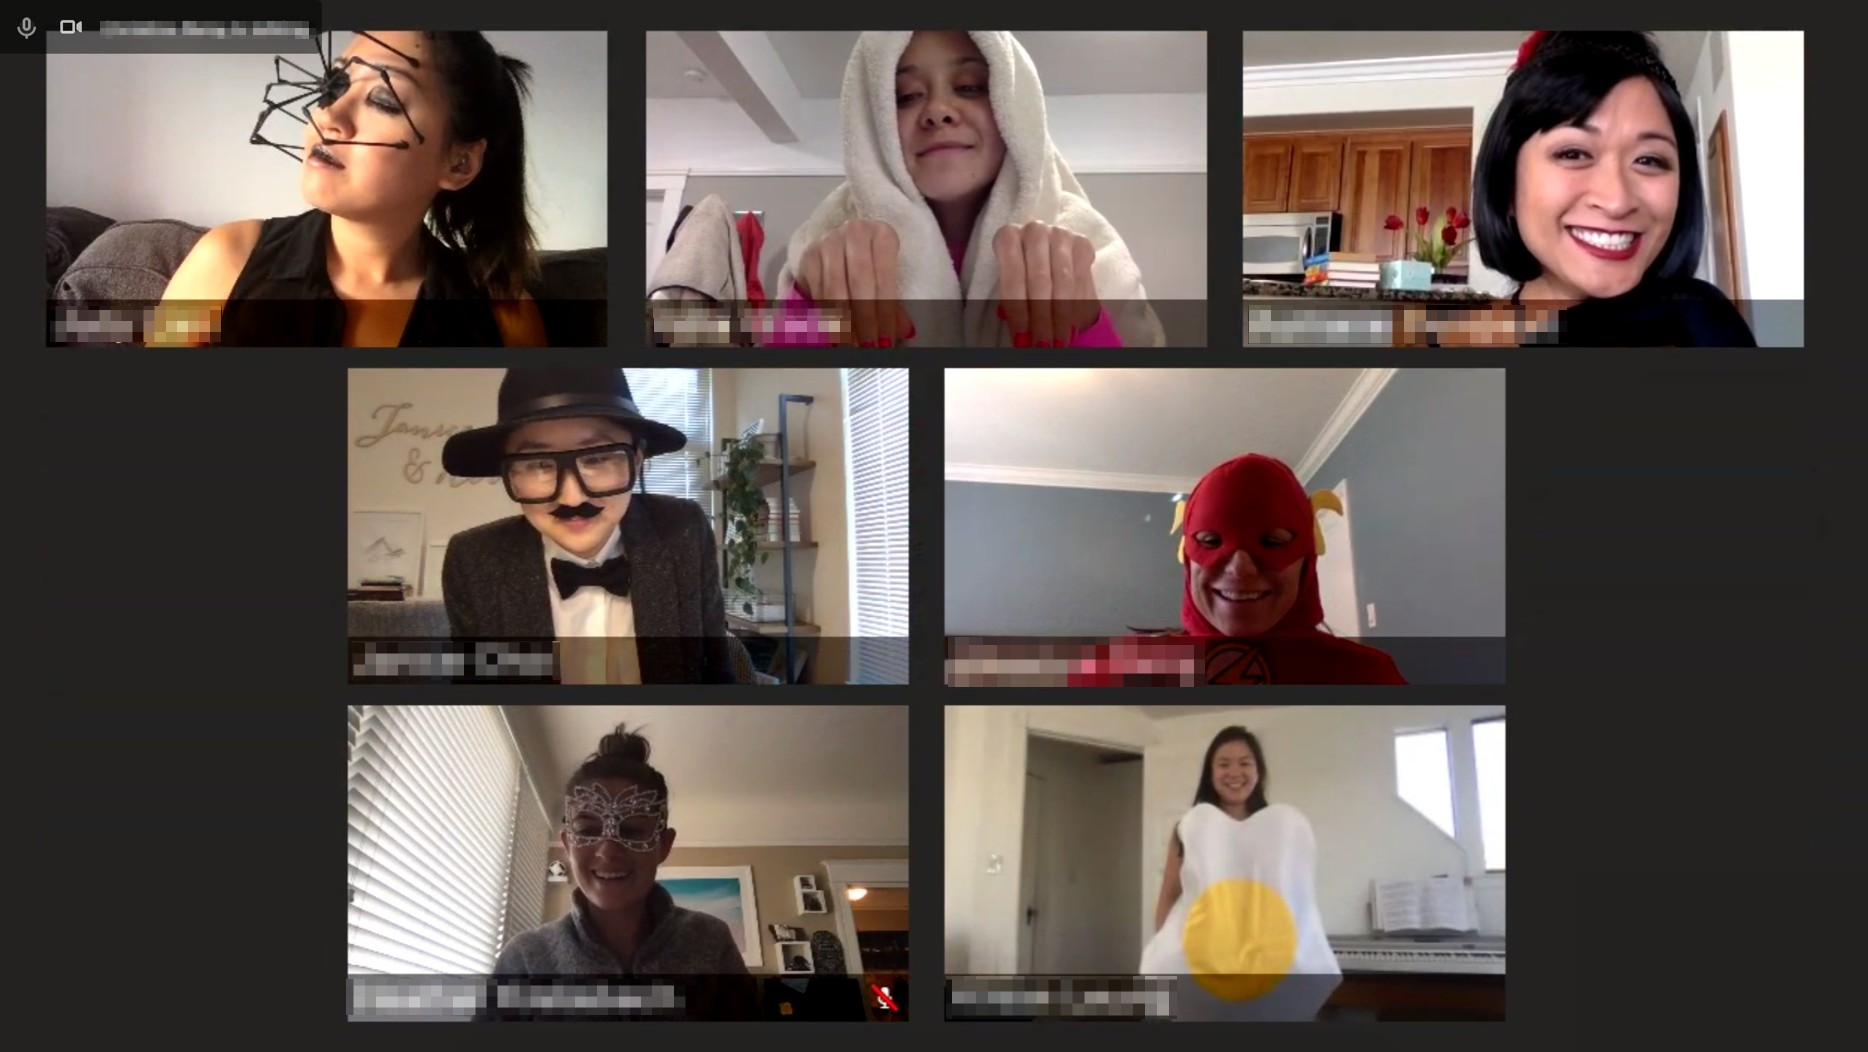 Working from home in costume on Halloween